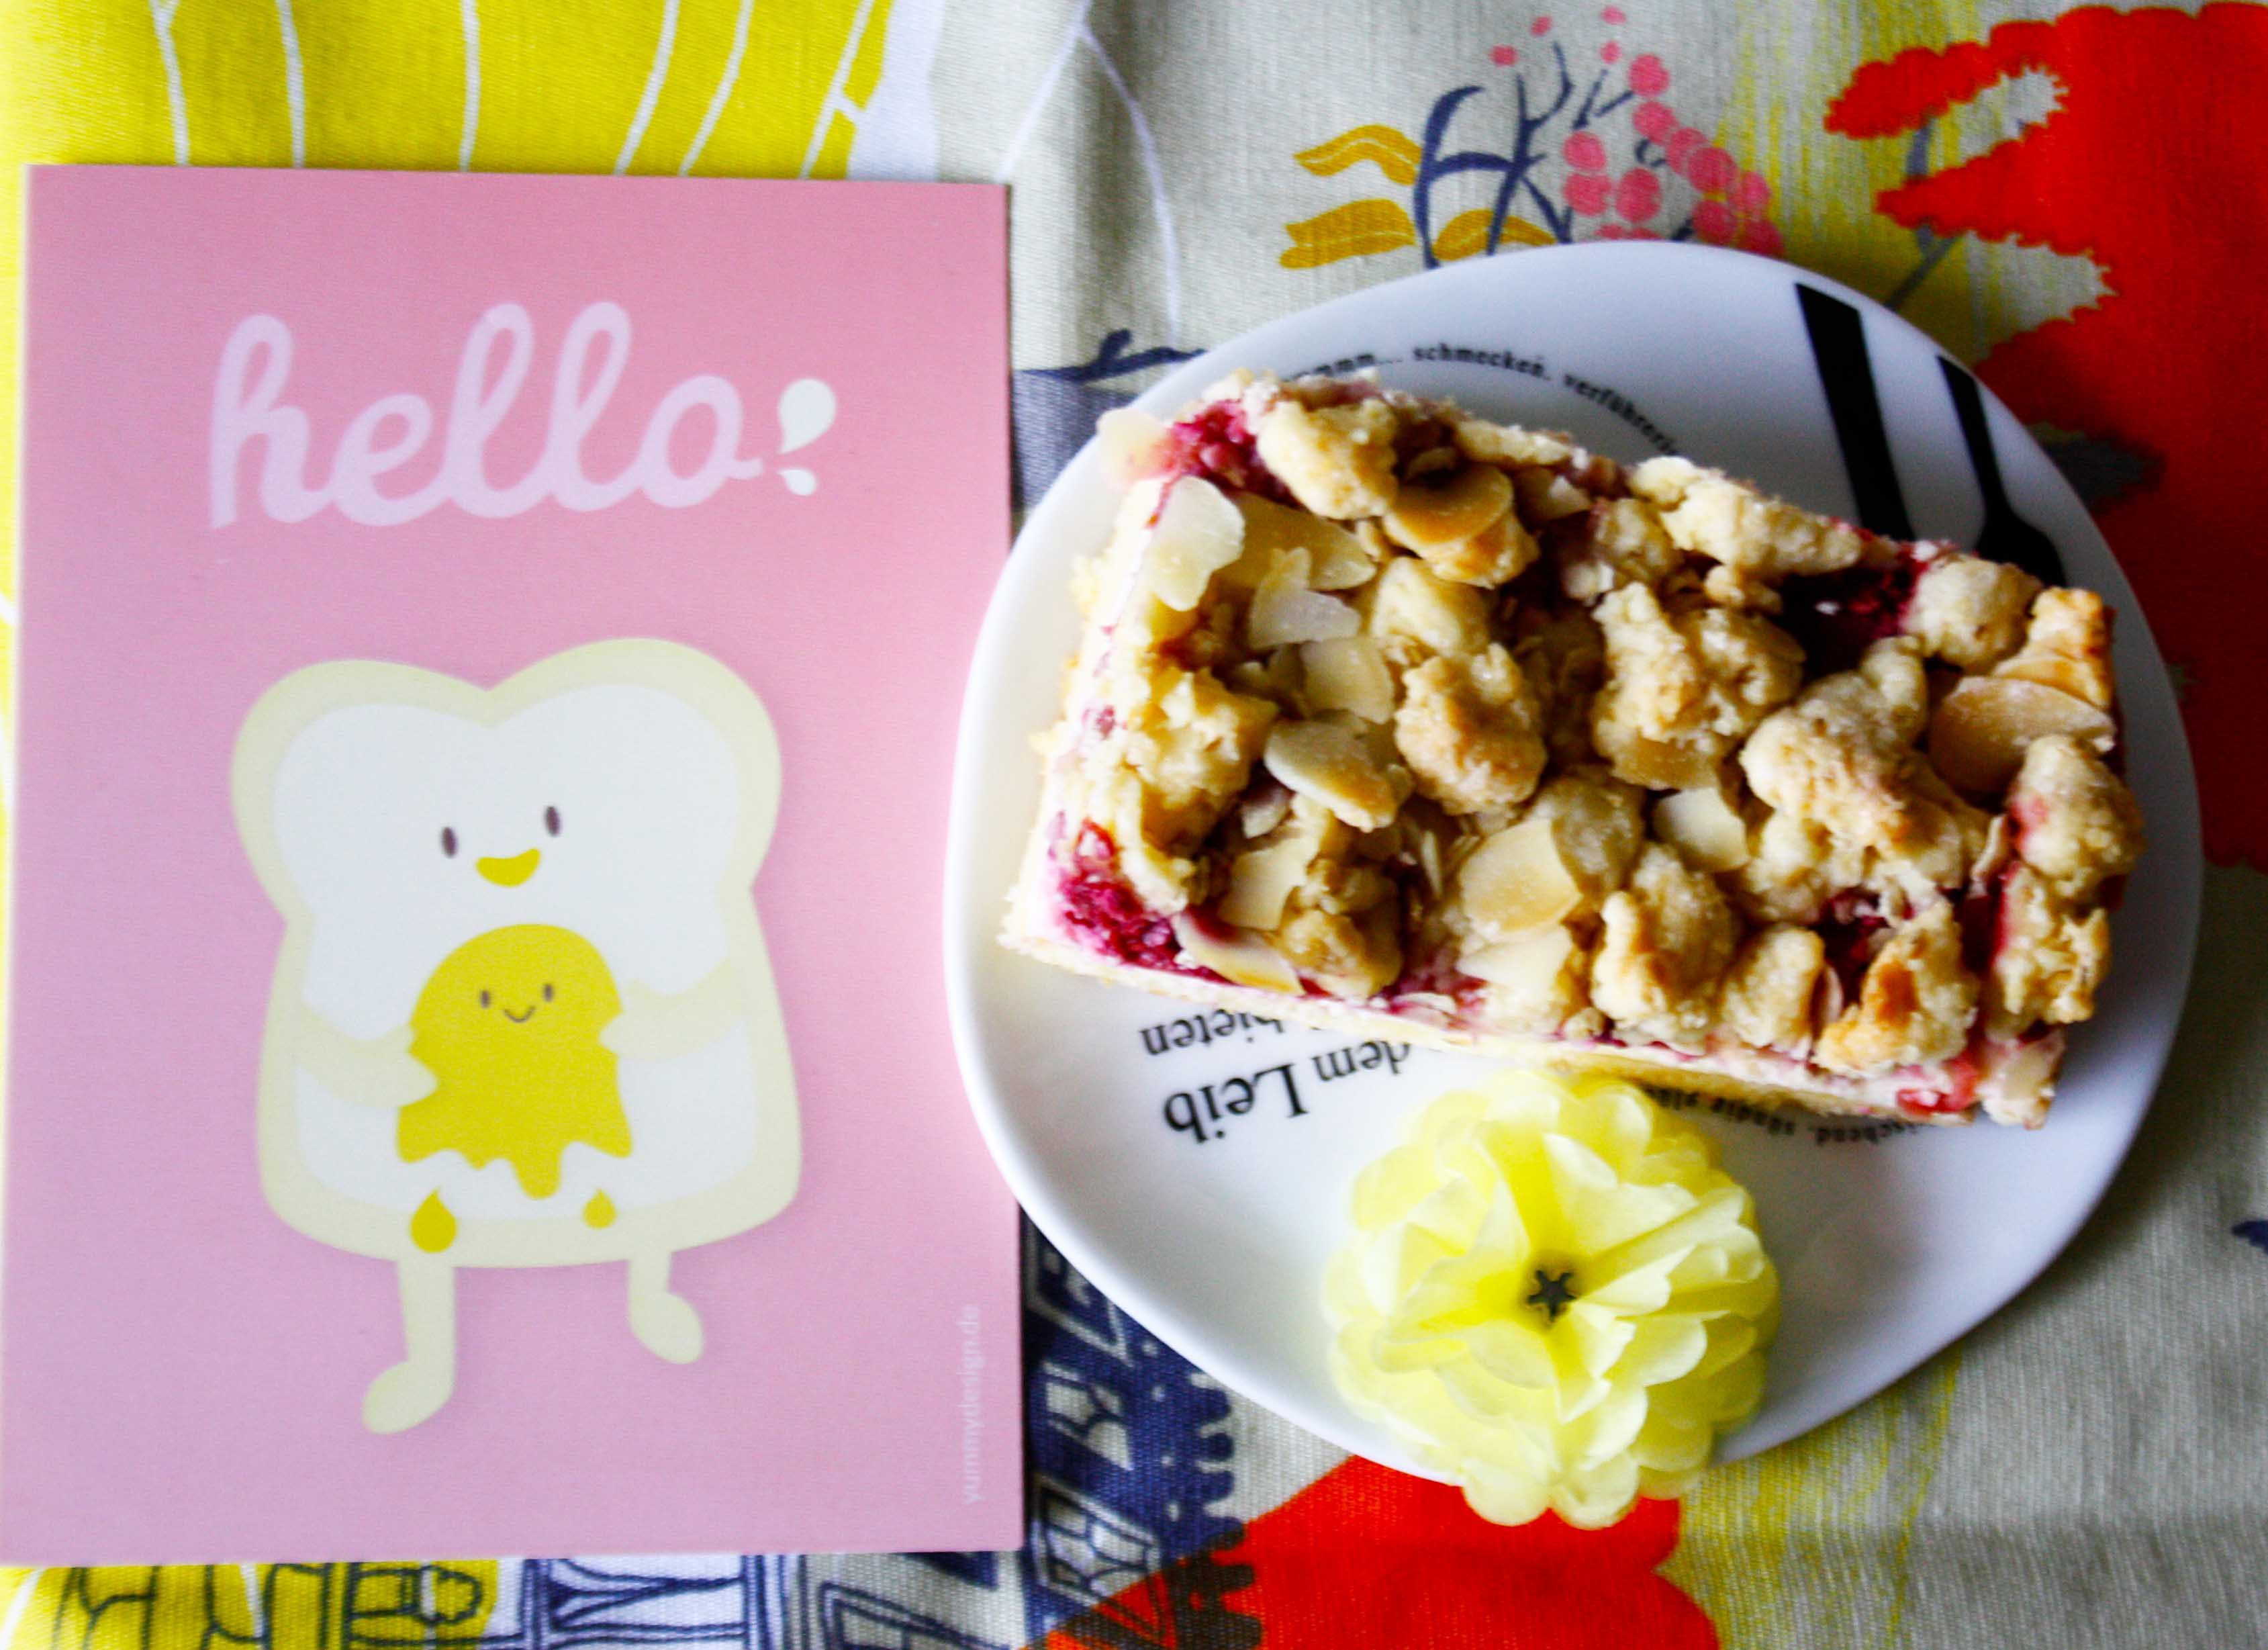 Apfel Himbeer Streusel Kuchen // Crumble Cake with apple and raspberry by http://babyrockmyday.com/apfel-himbeer-streusel-kuchen/